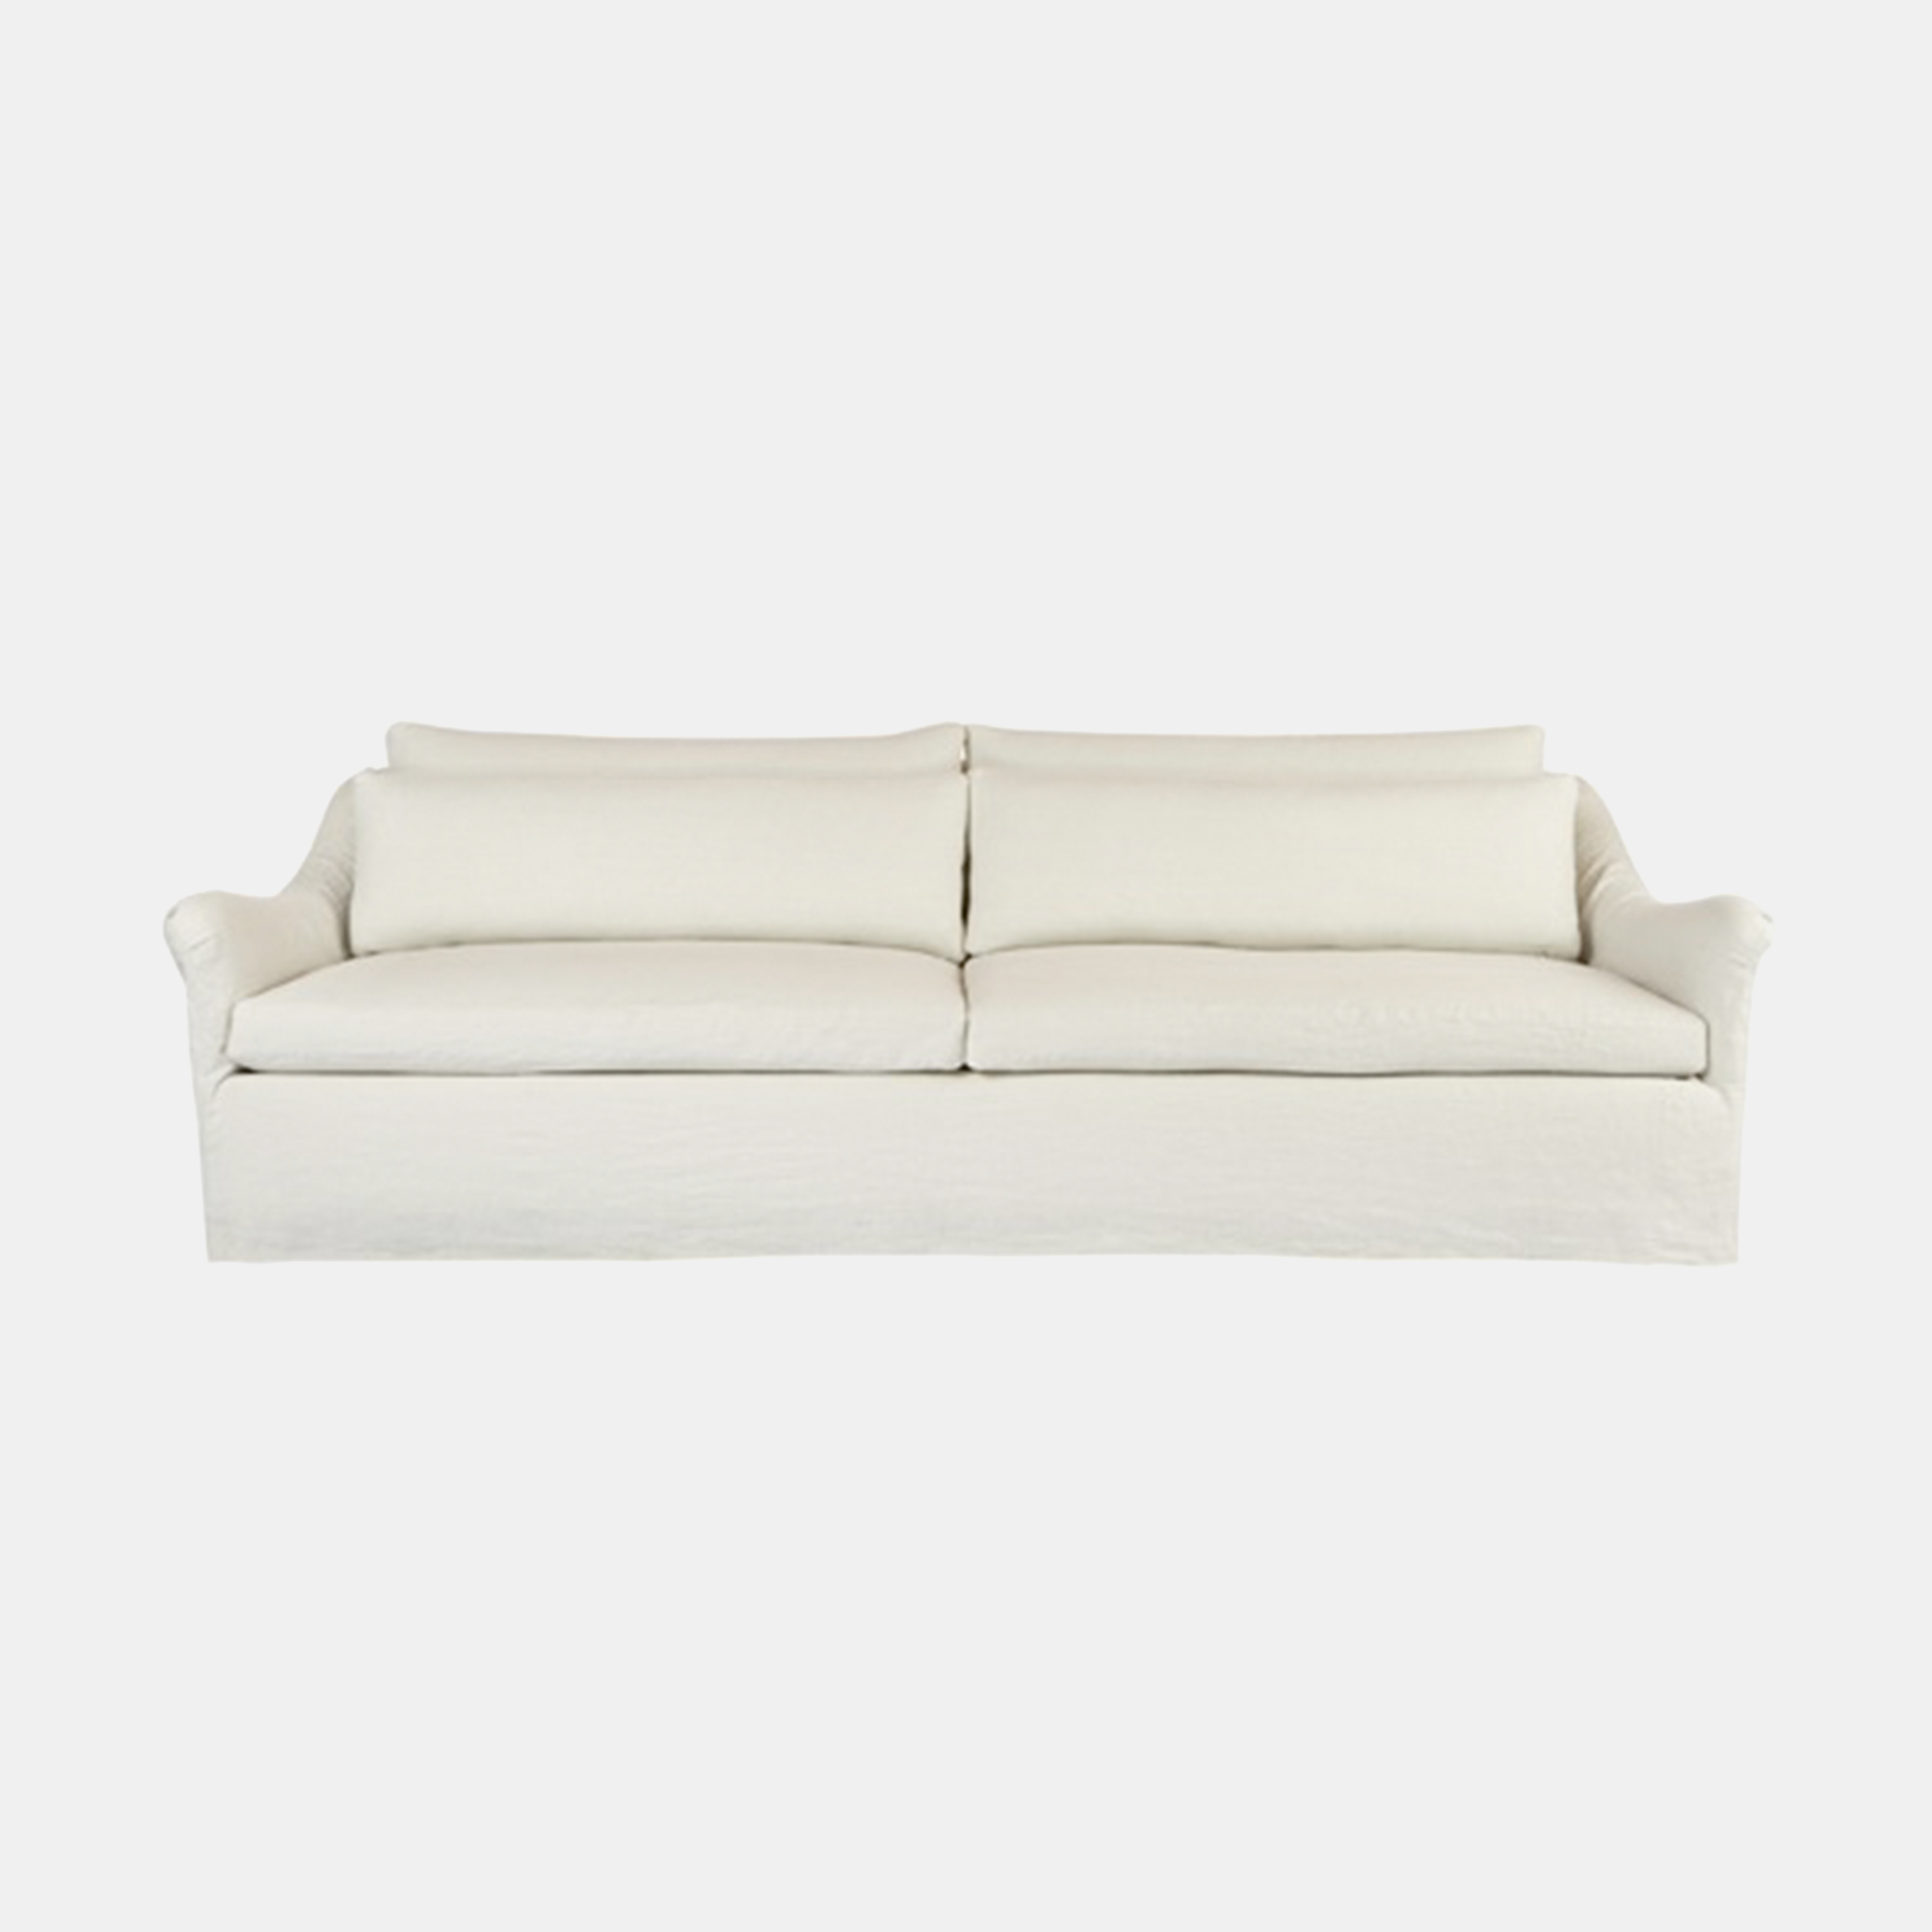 """Genevieve Sofa  84""""w x 32""""h x 43""""d 96""""w x 32""""h x 43""""d 108""""w x 32""""h x 43""""d Available slipcovered and upholstered. Also available as chair, chair and a half, and loveseat. SKU1309CSC"""